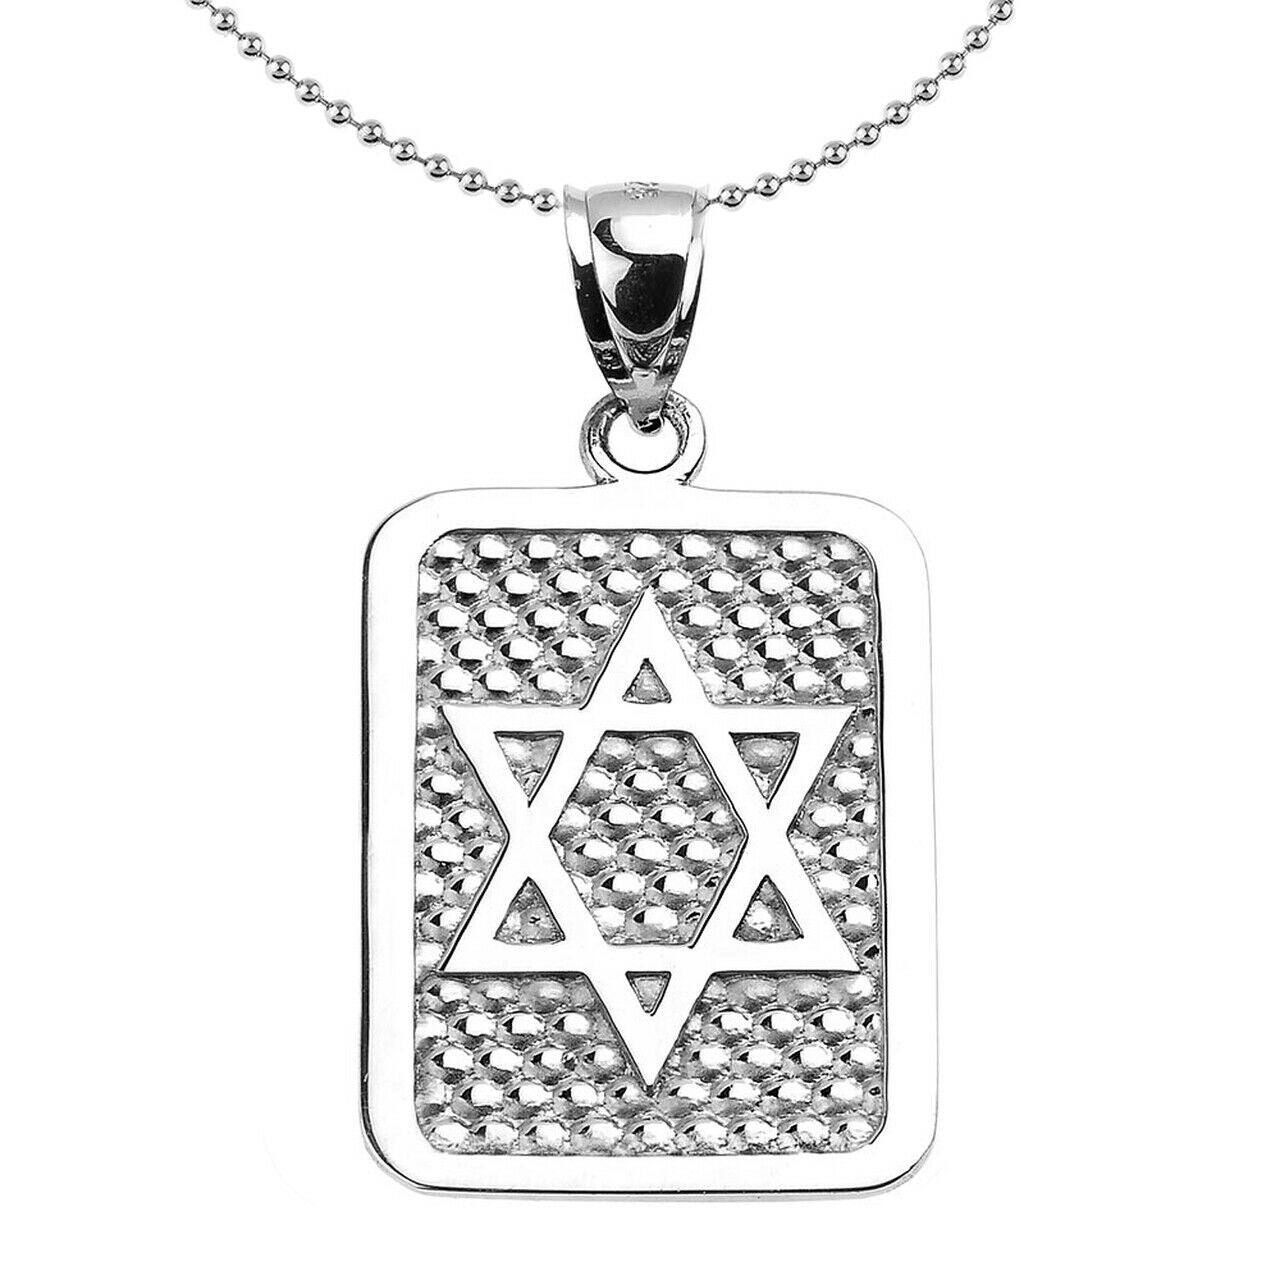 925 Sterling Silver Star of David Engrave Dog Tag Pendant Necklace Made in US